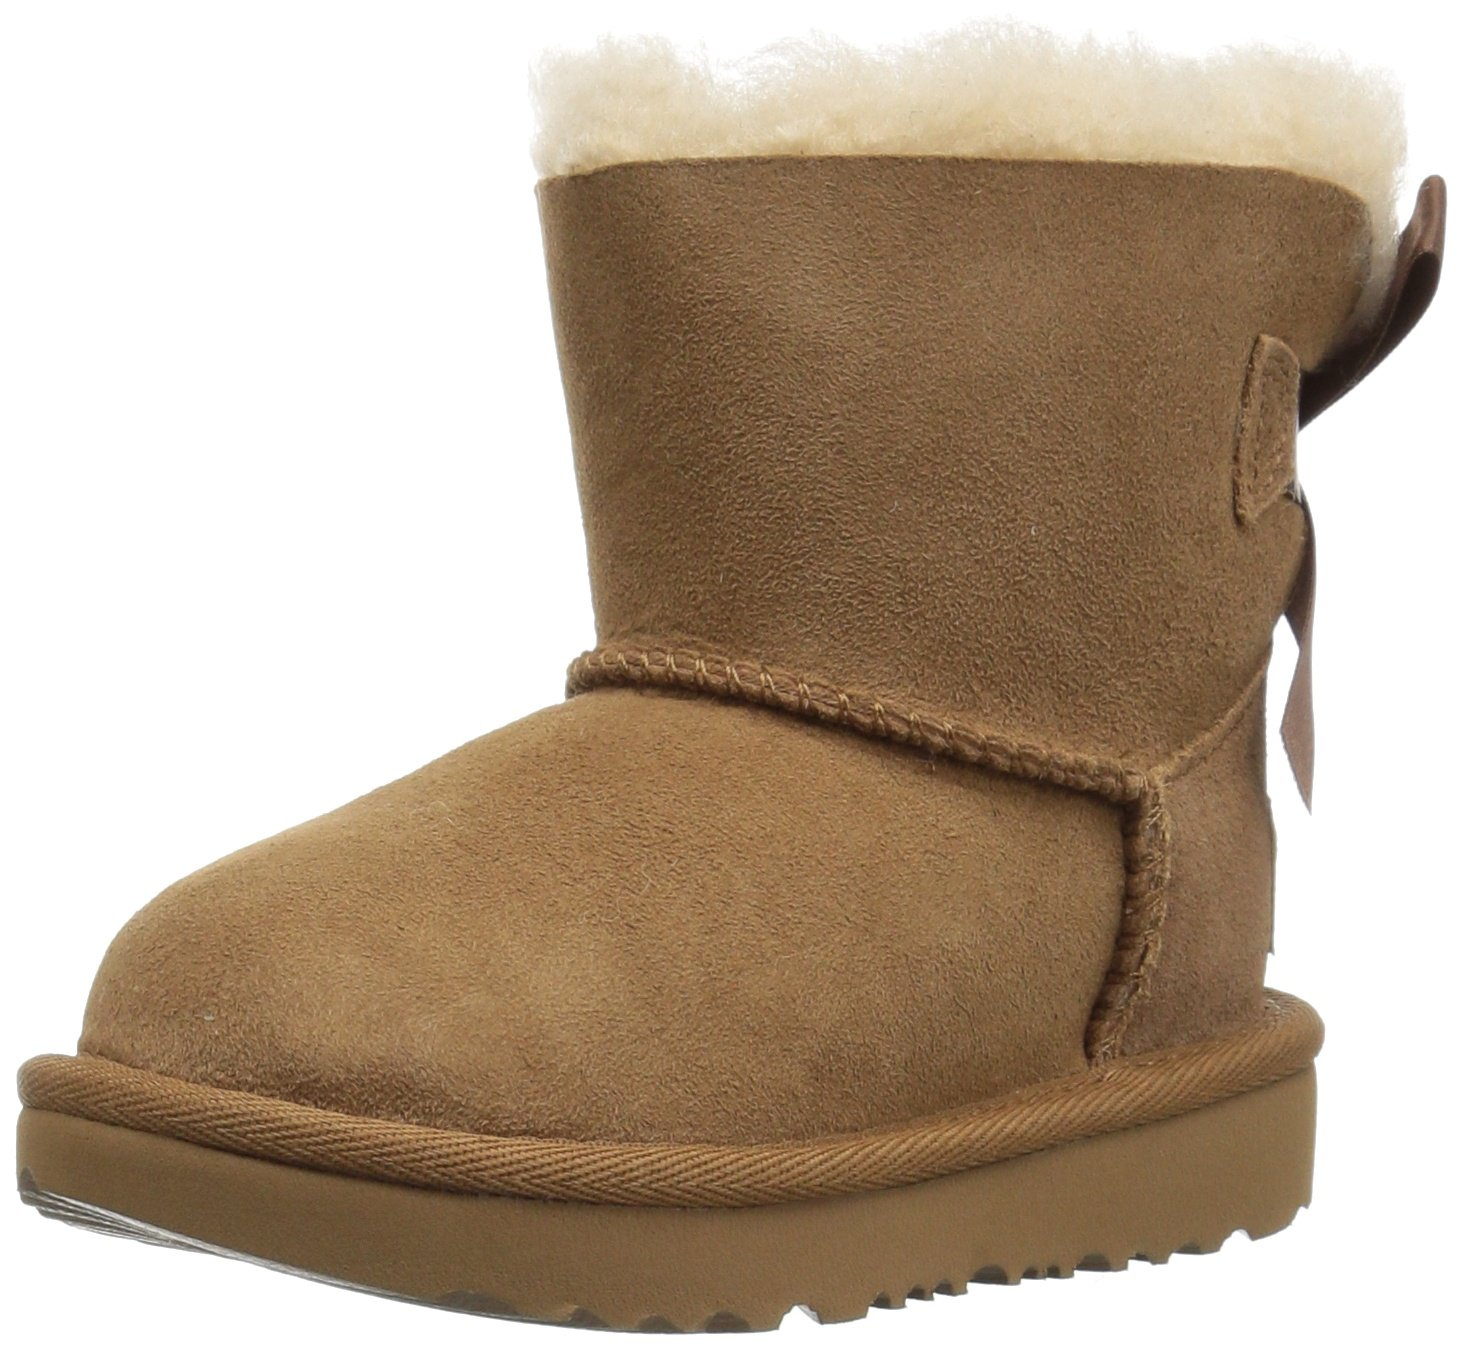 UGG Girls T Mini Bailey Bow II Pull-on Boot, Chestnut, 12 M US Little Kid by UGG (Image #1)